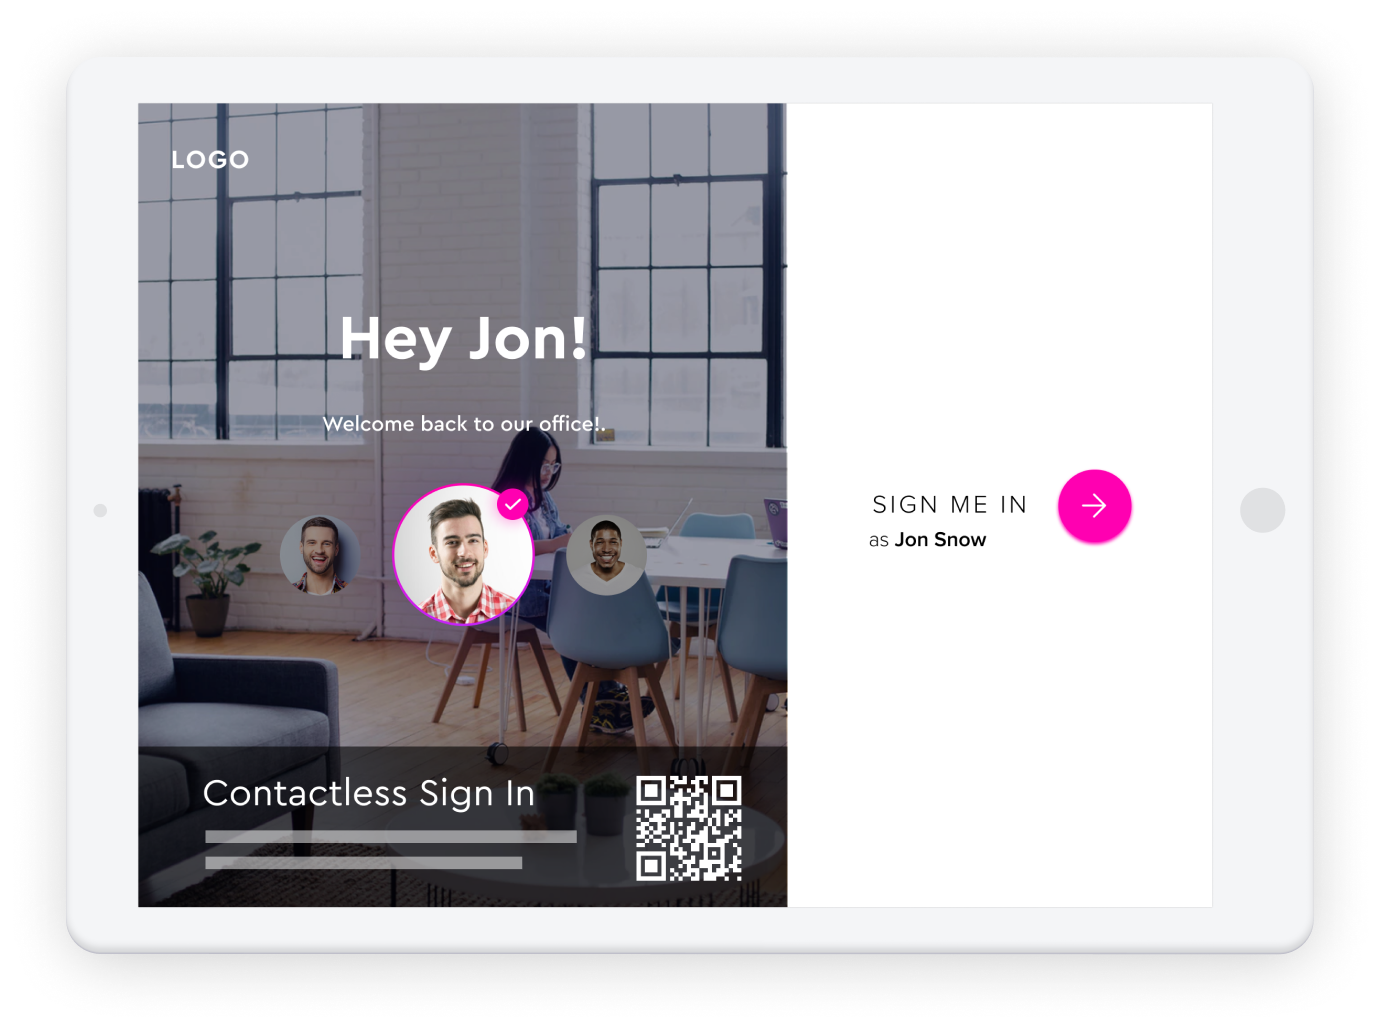 Image of an iPad showing 'Hey Jon! Welcome back to our office' and an option to sign in with a QR code.